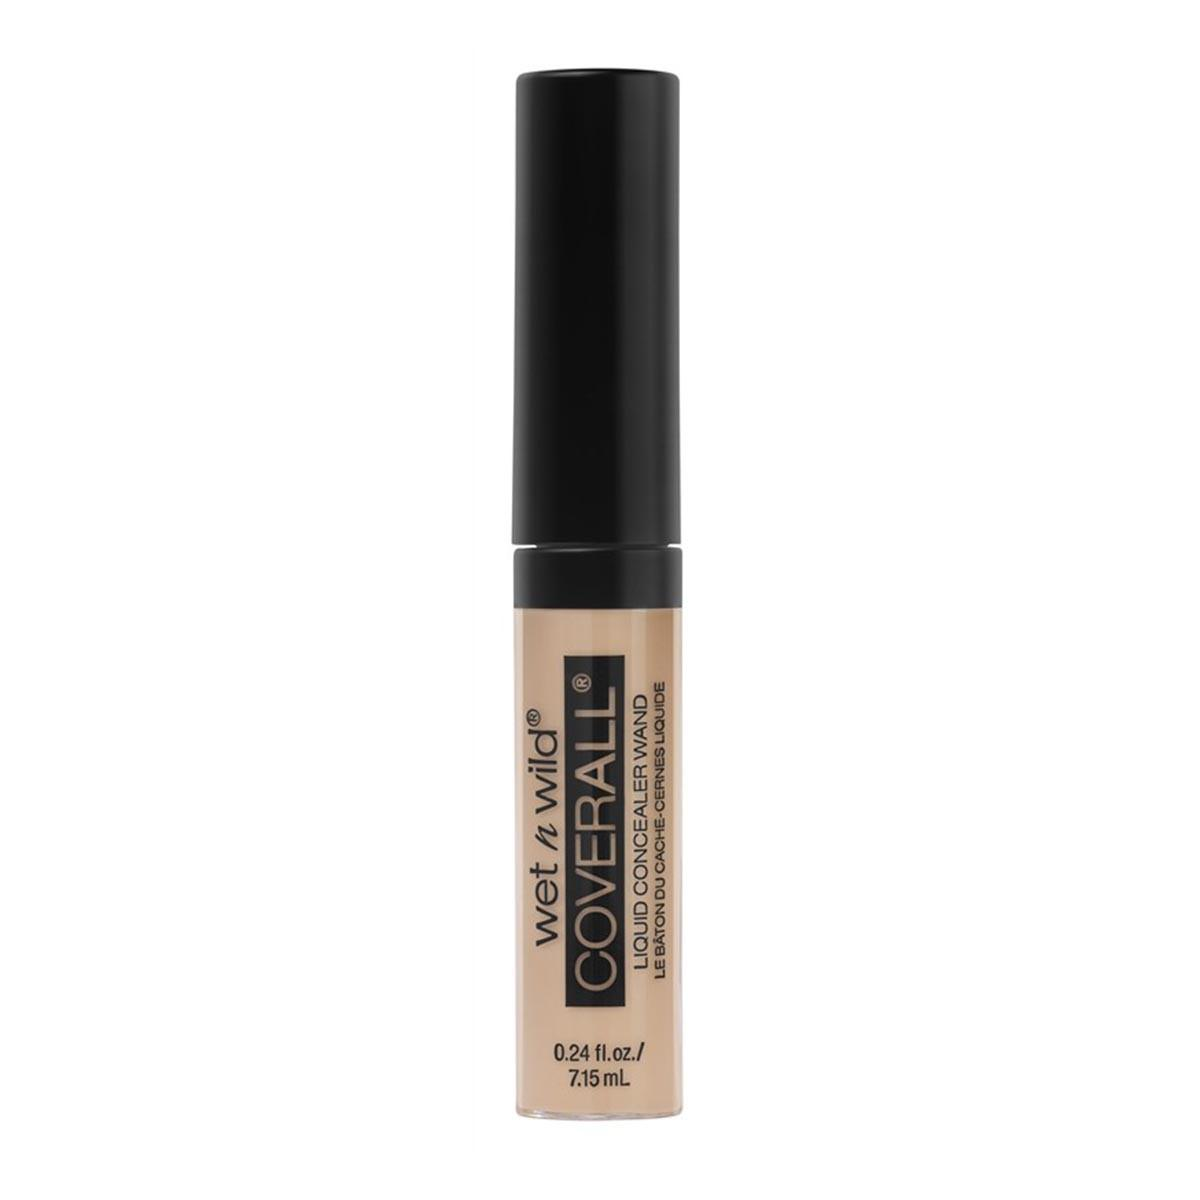 Wet n wild Coverall Liquid Concealer Wand Medium